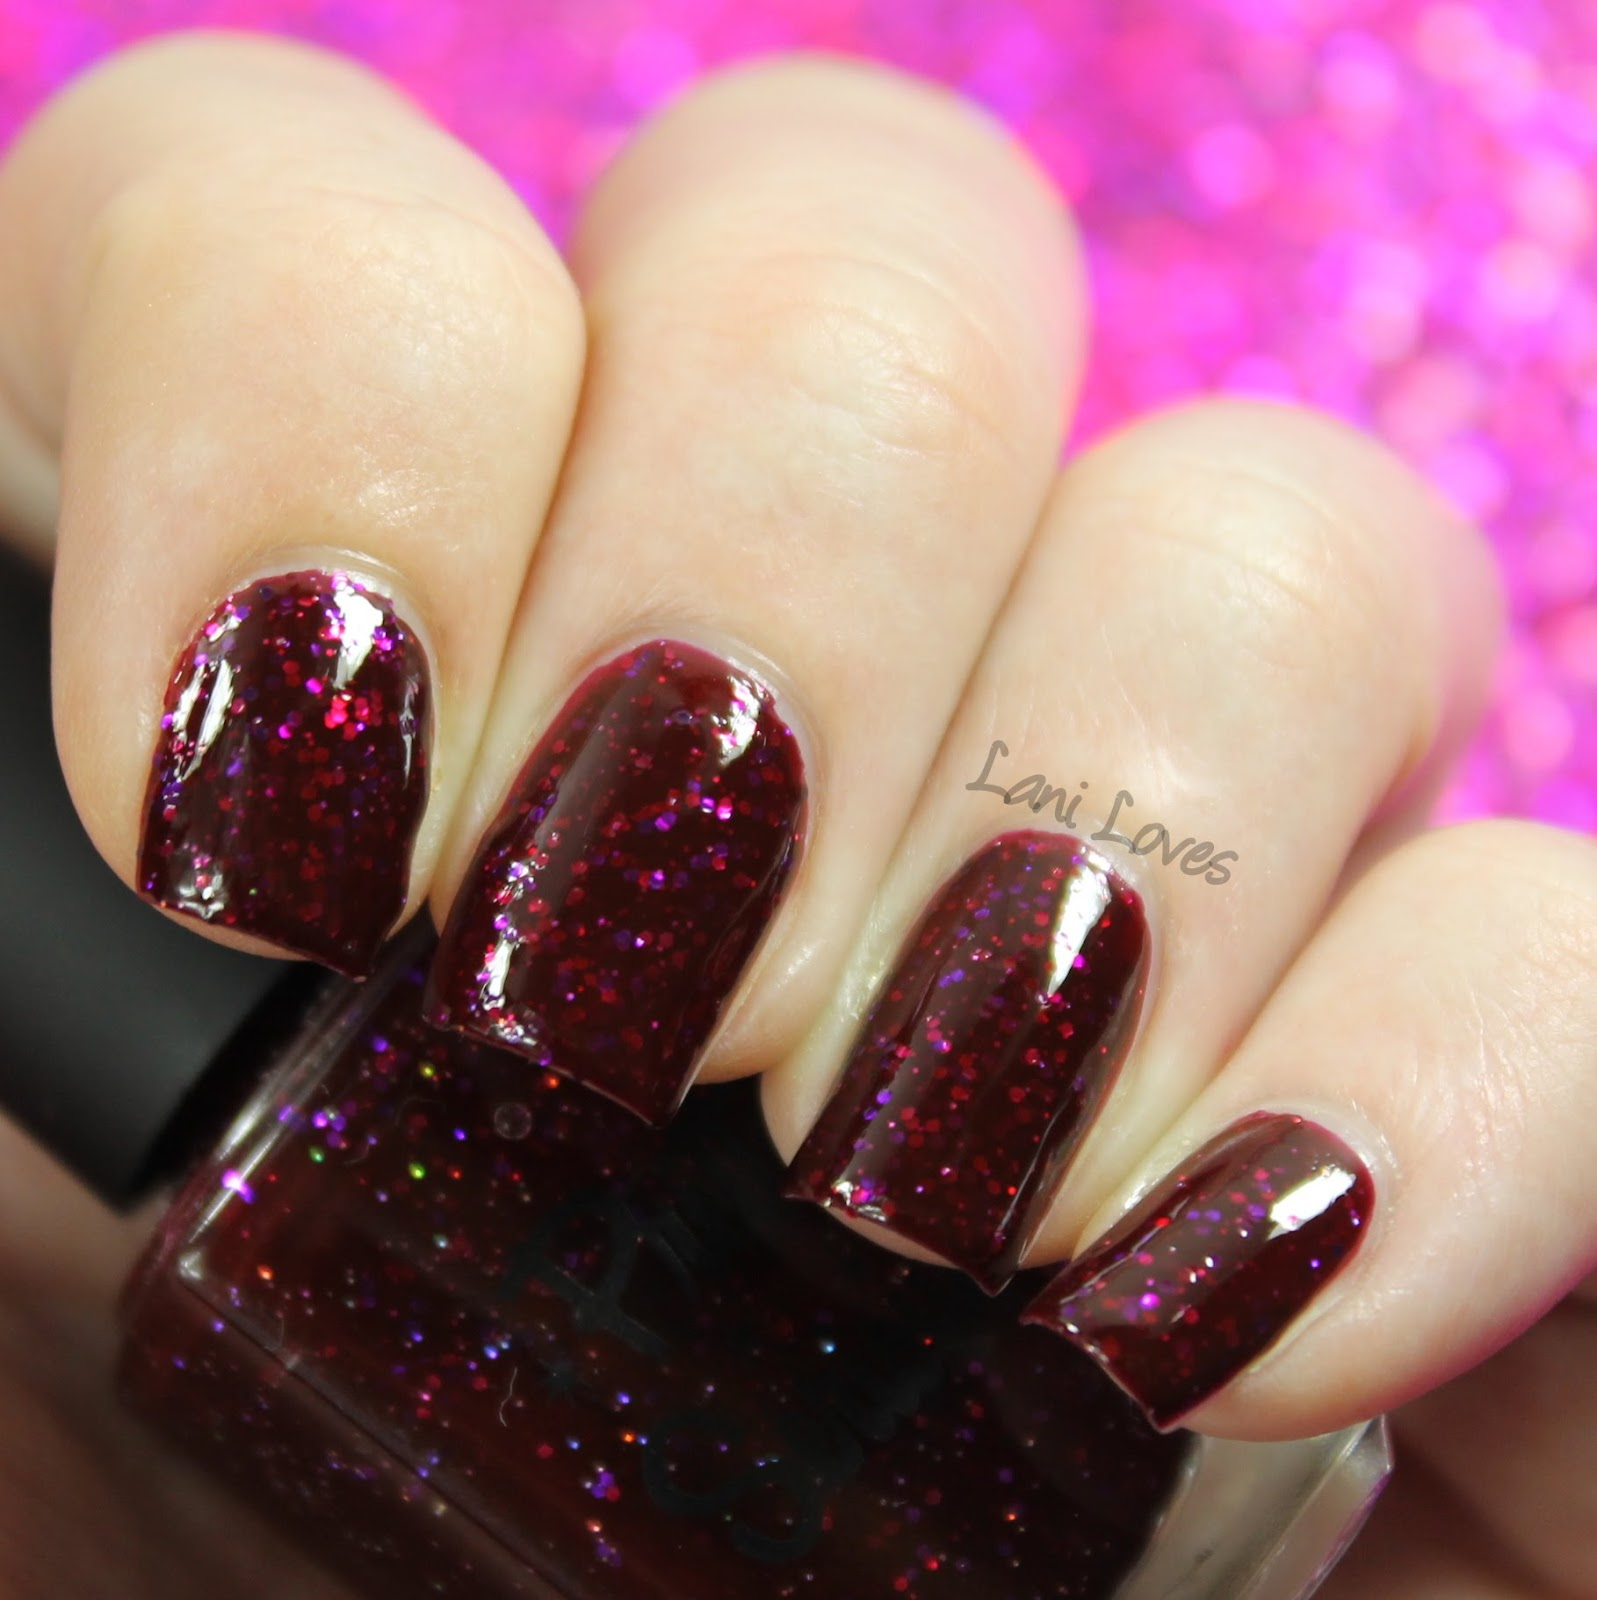 Pretty Serious Bloody Bride swatch